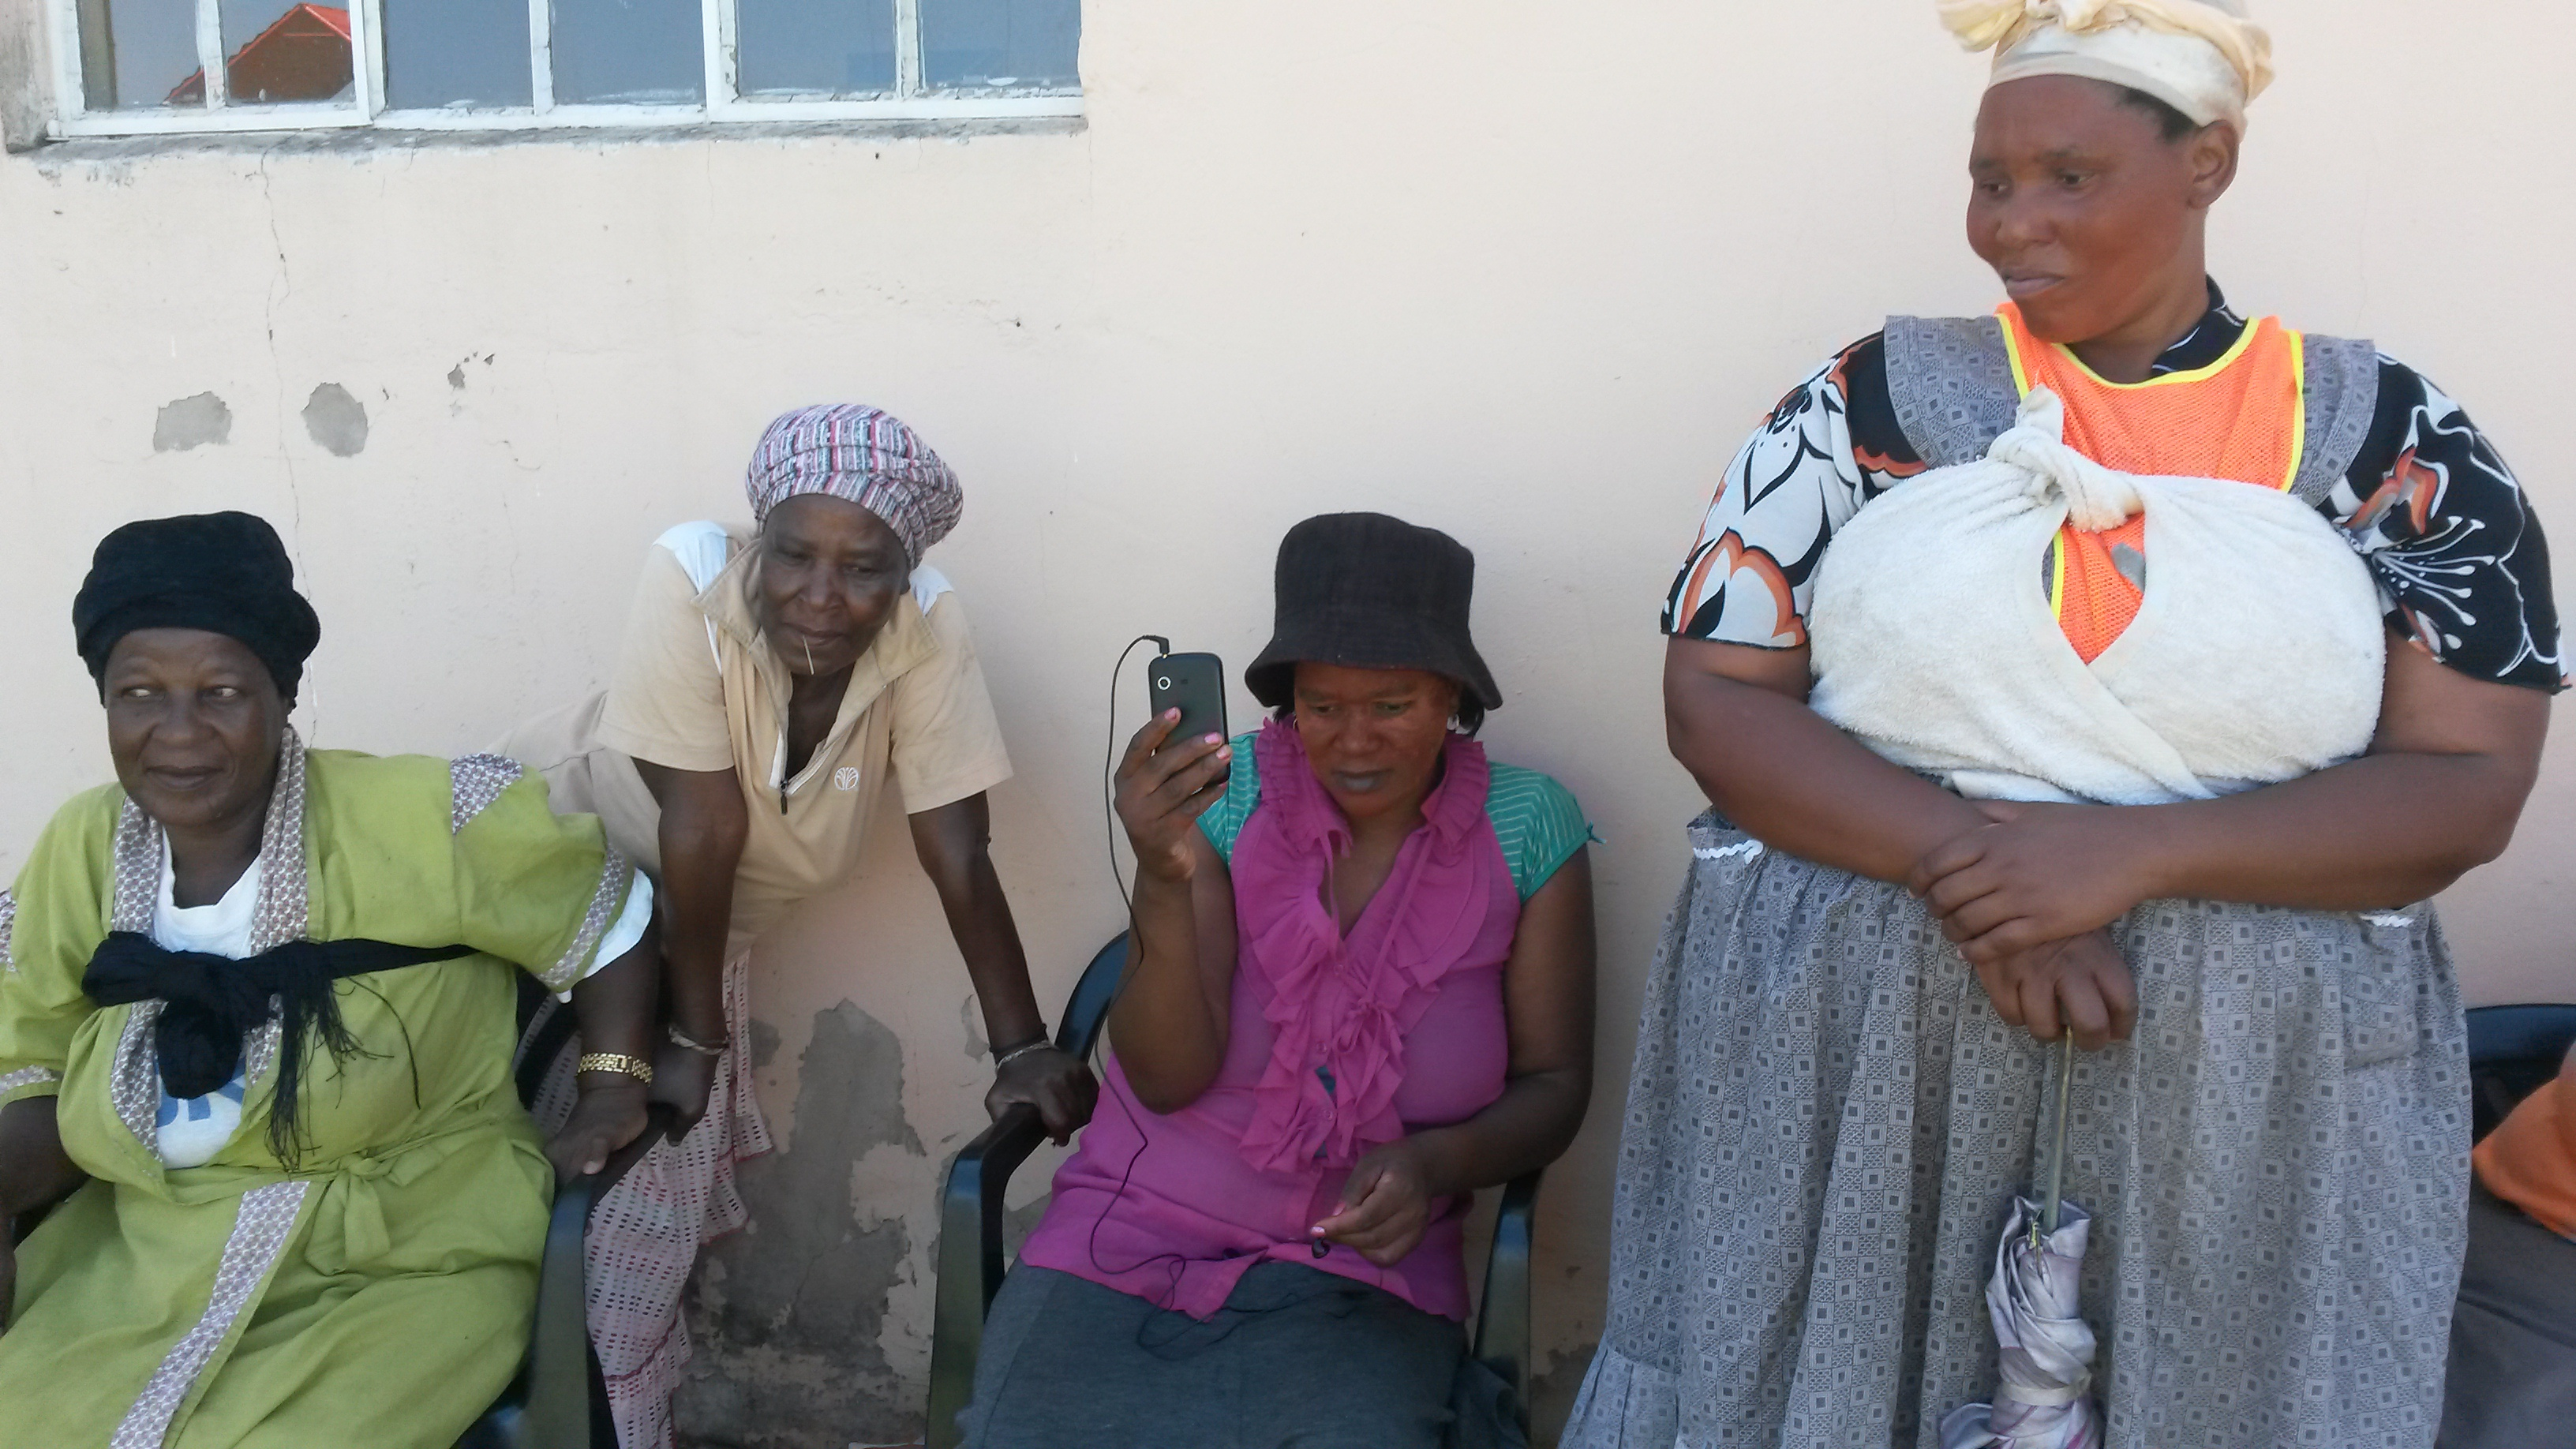 rural women in KwaZulu Natal, South Africa listening to radio on cellphone